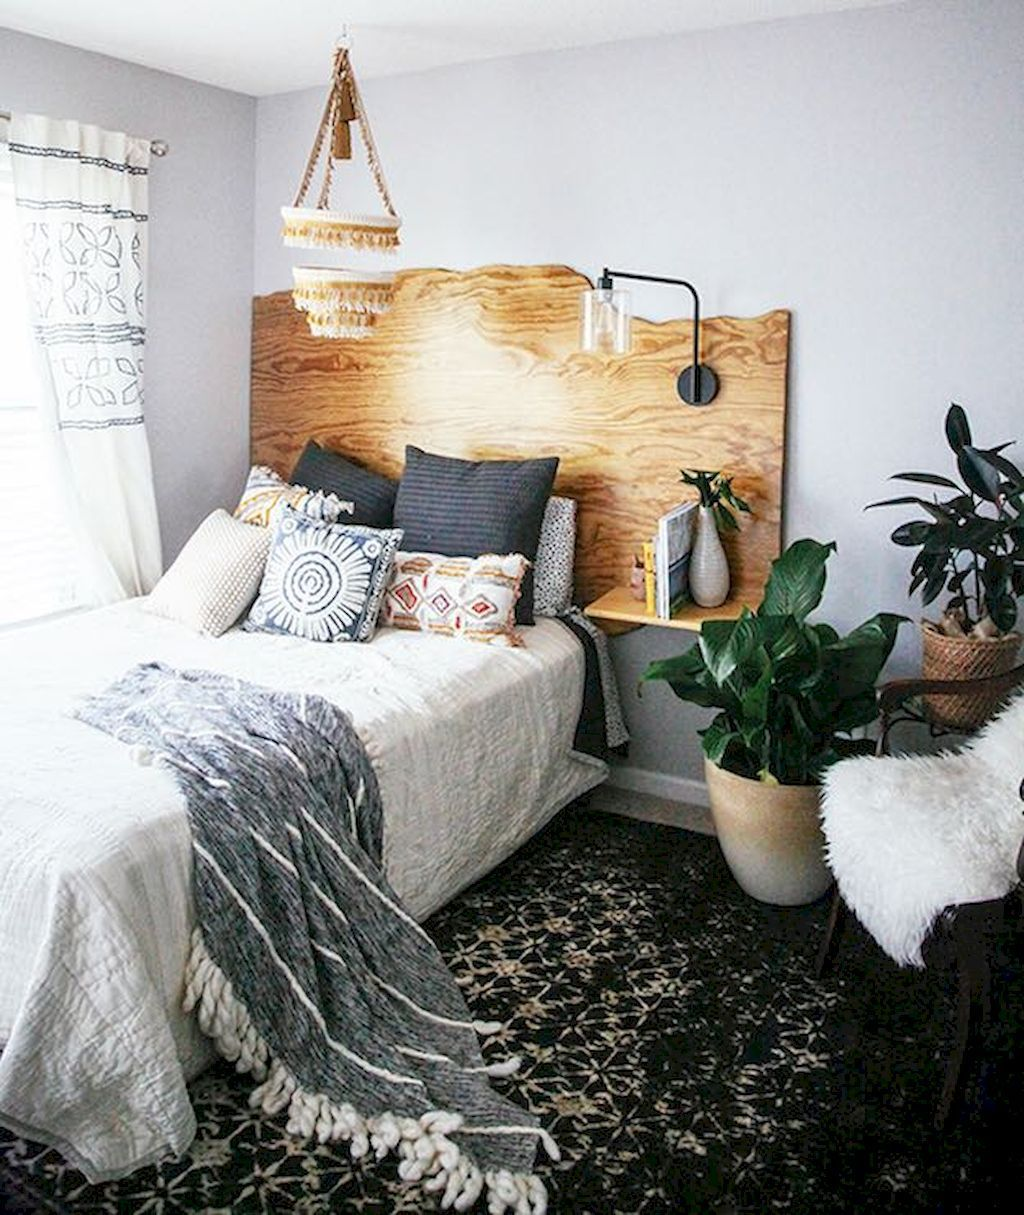 Best Beautiful Bohemian Style Master Bedroom Ideas 52 Apartment Bedroom Decor Home Bedroom Small 400 x 300